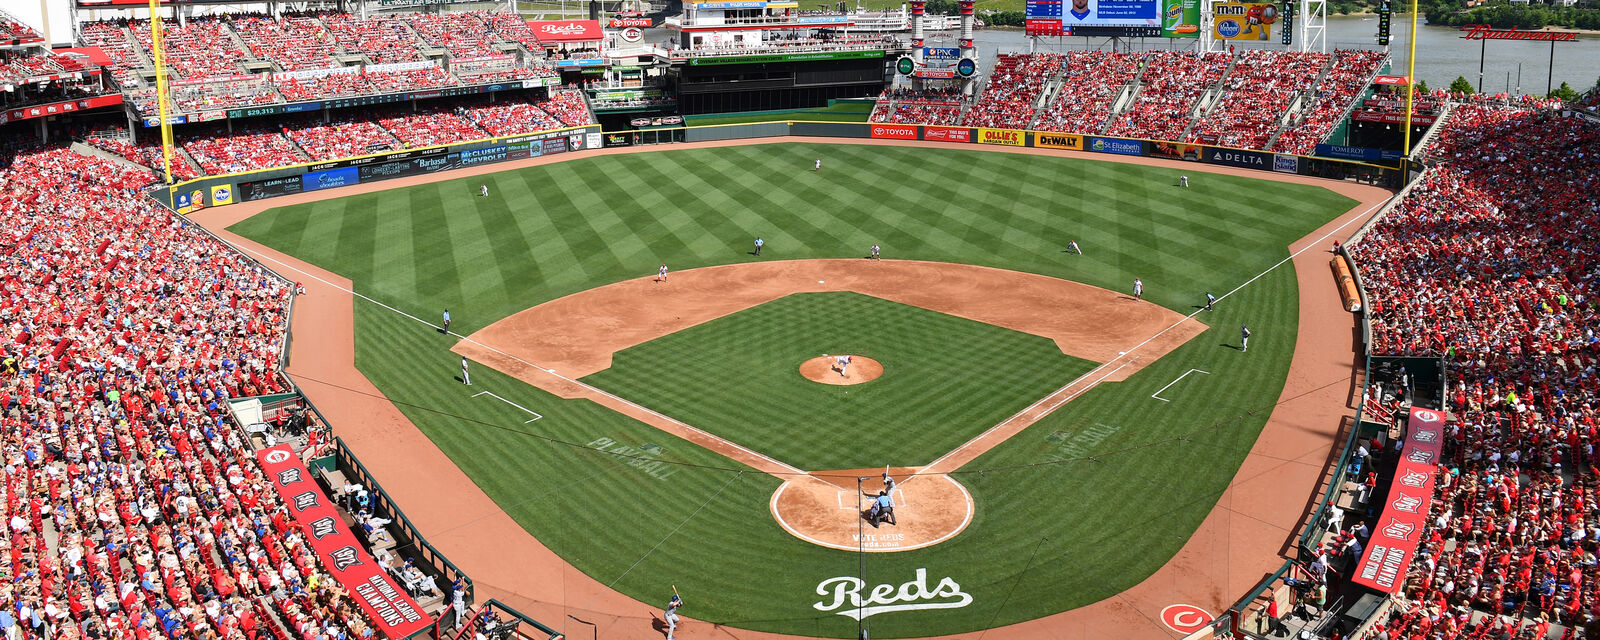 San Francisco Giants at Cincinnati Reds Tickets (Fireworks)